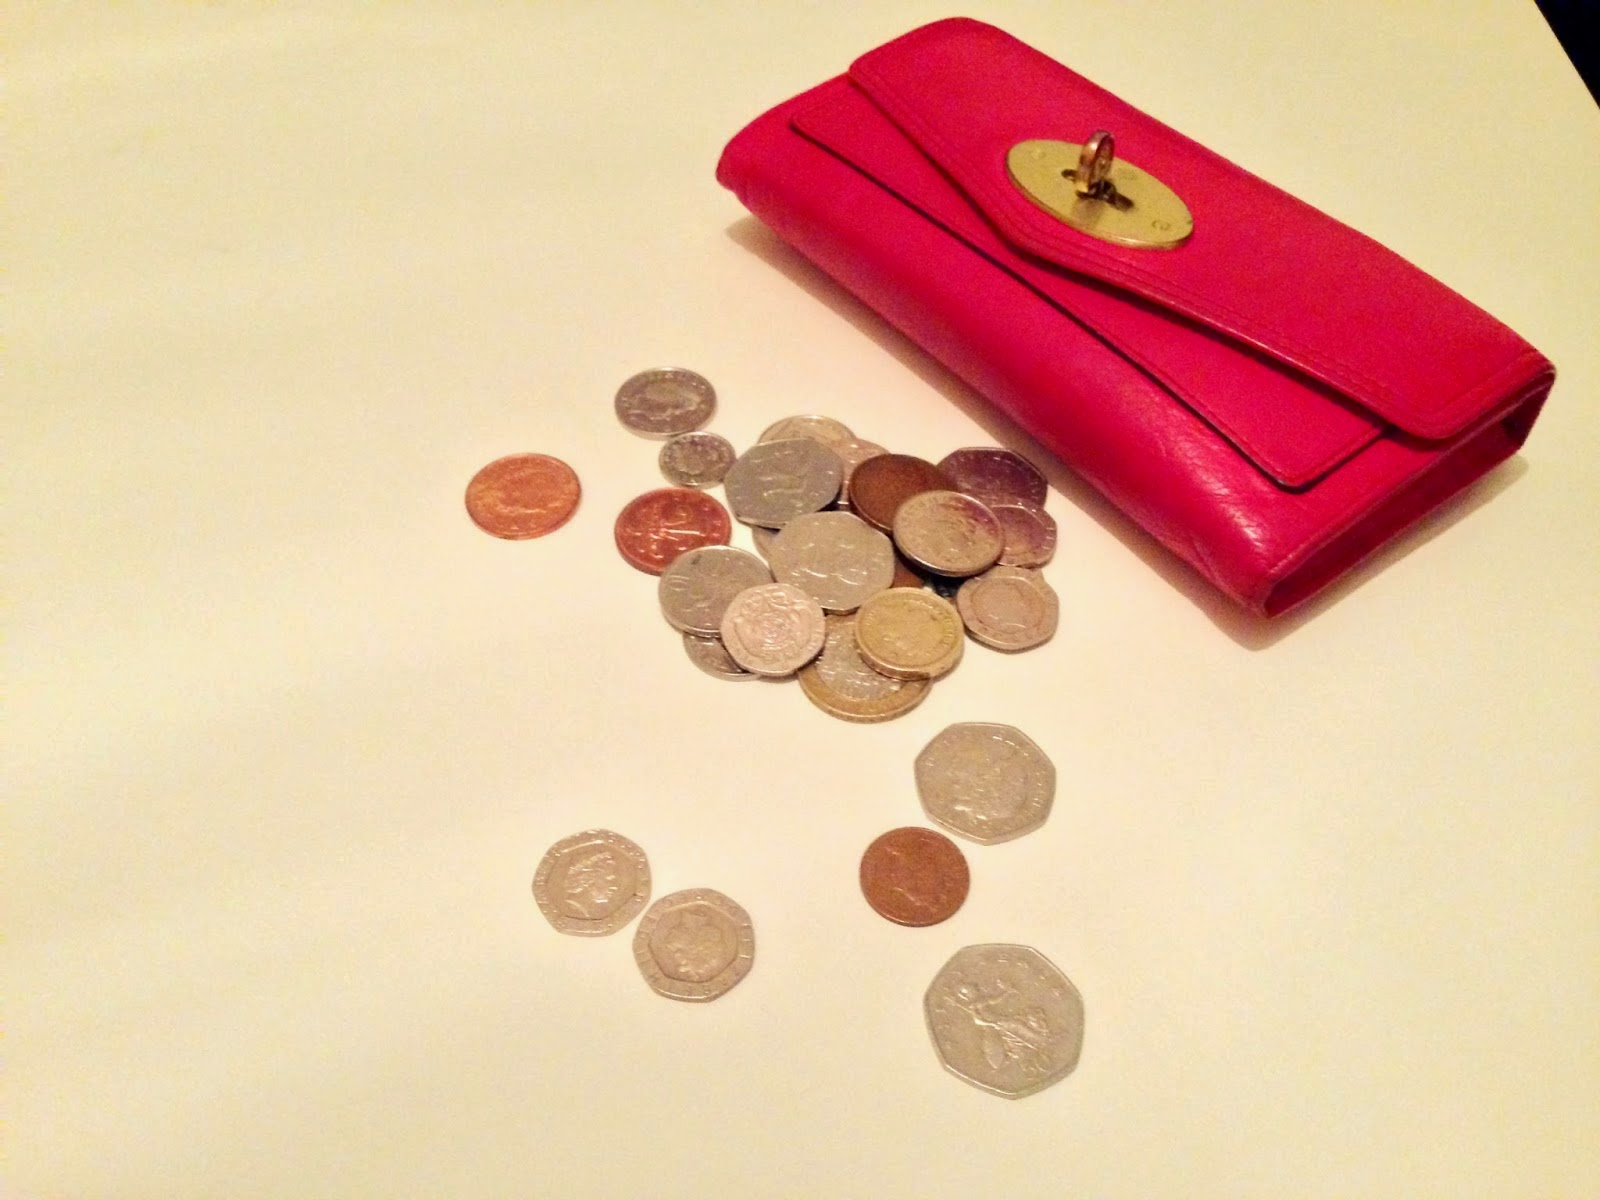 Top Five How to Save Money Tips